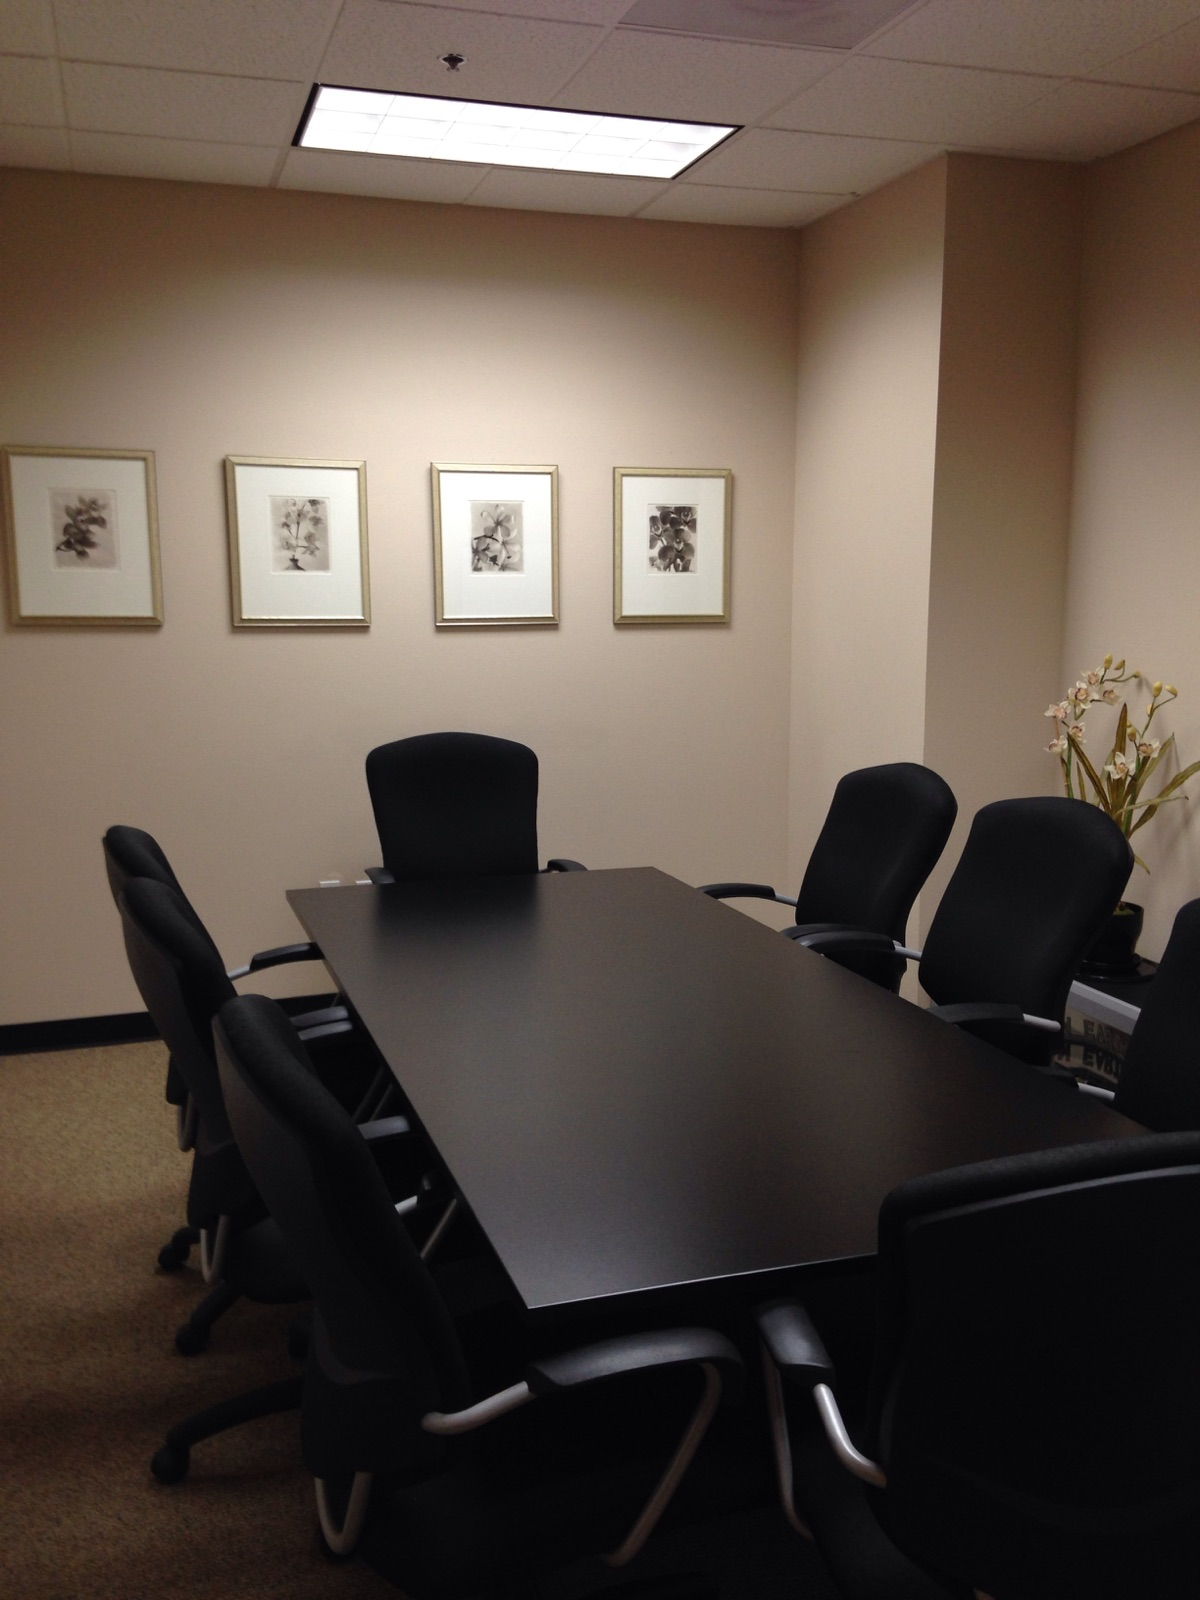 space planning for meeting rooms Over 15,000 groups each year depend on our masterful function space, which includes 30 meeting rooms,  to begin the planning process, submit an rfp or call us.